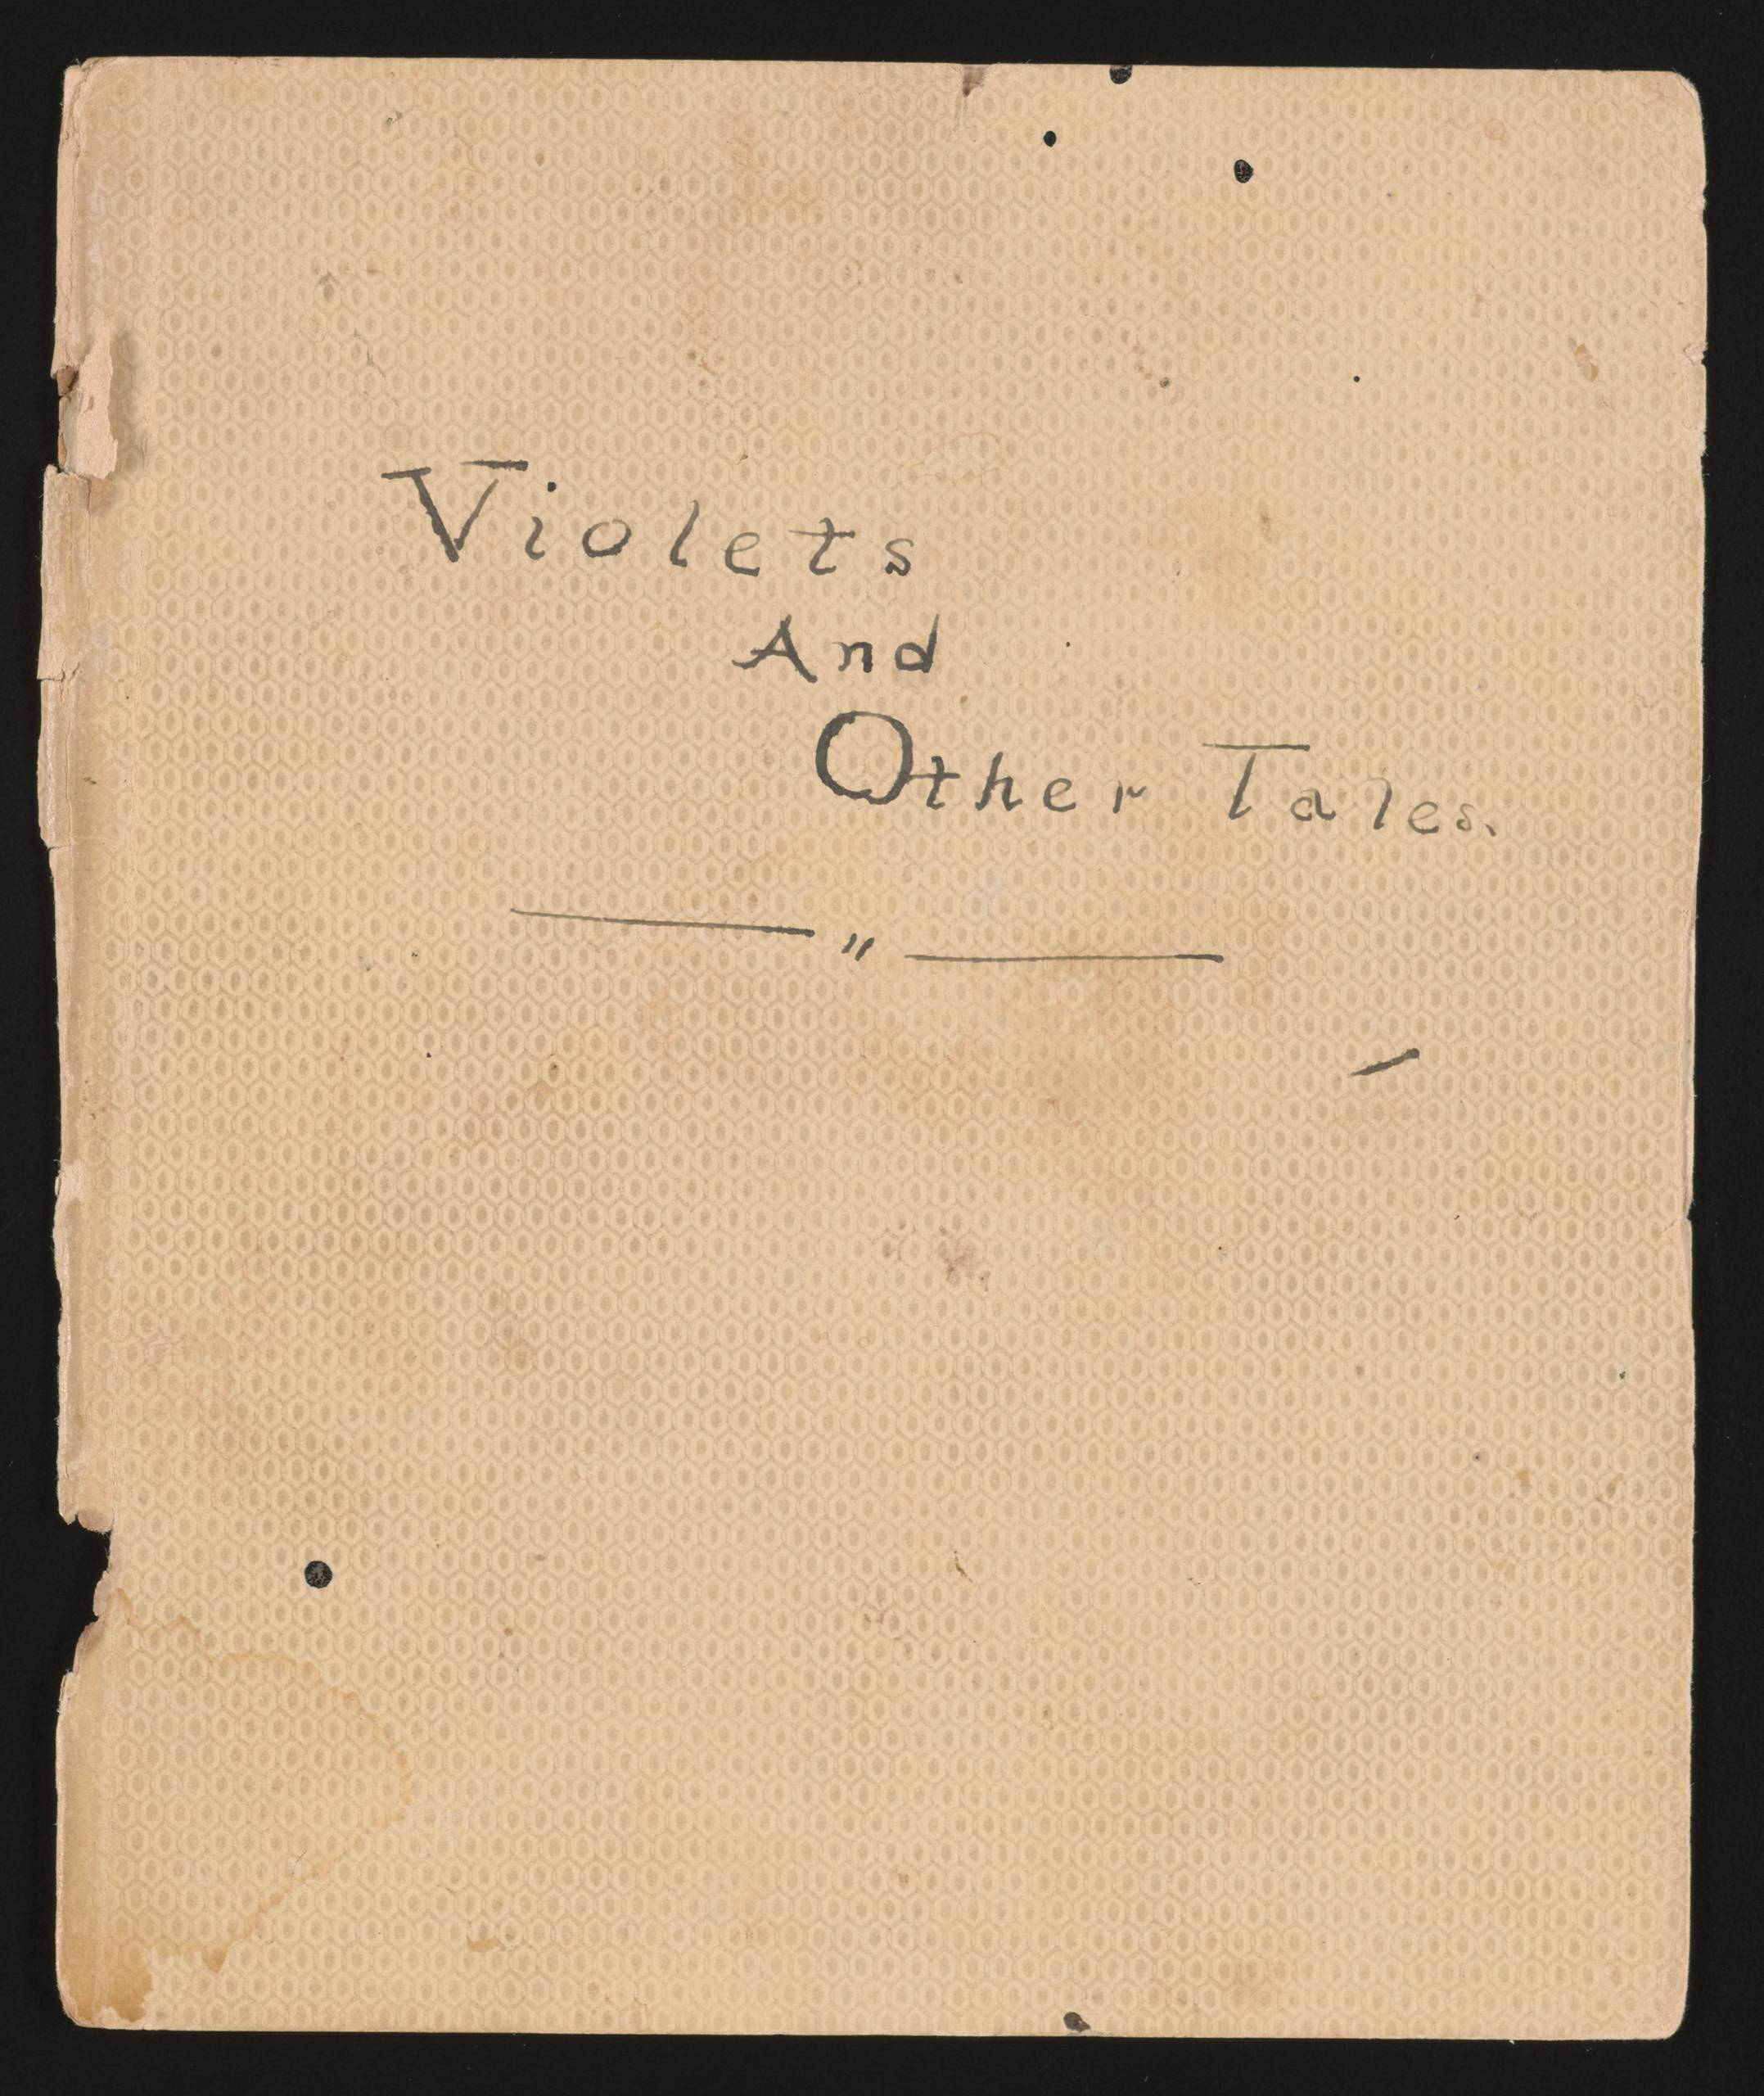 Photo of Handwritten text that reads Violets And Other Tales